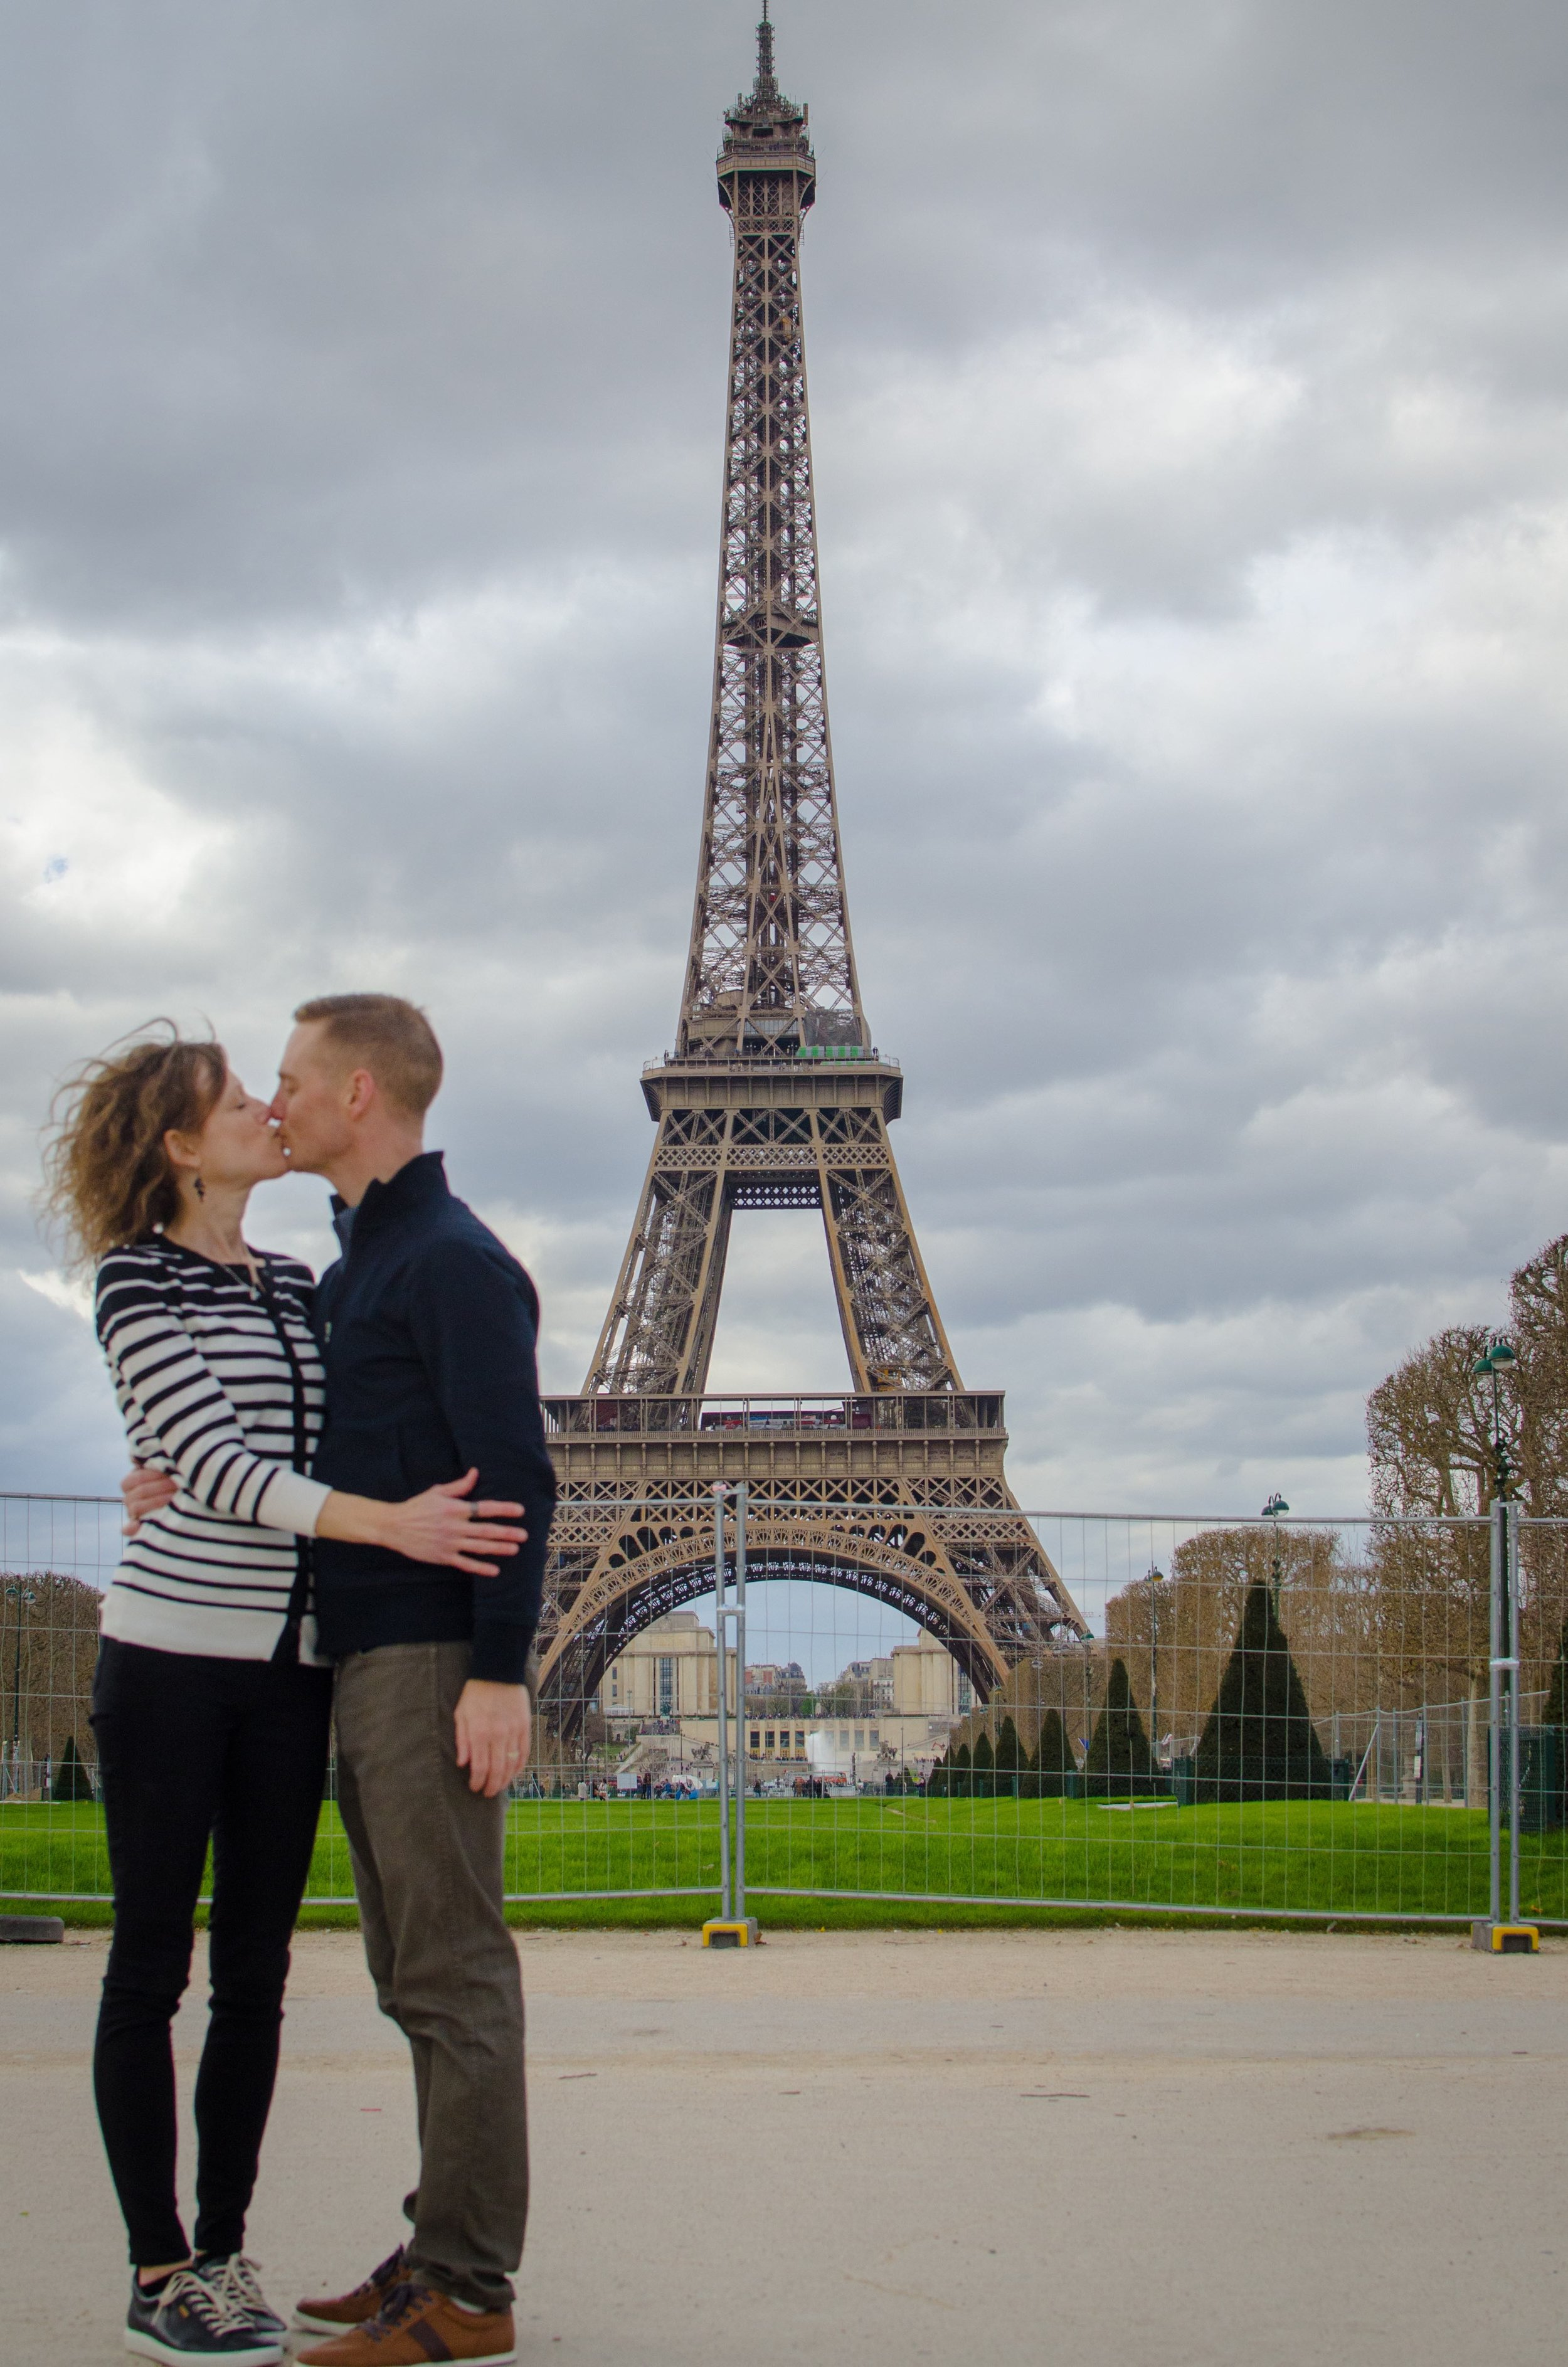 Taken this past spring in Paris by our daughter—we forced her to commemorate a mushy moment.